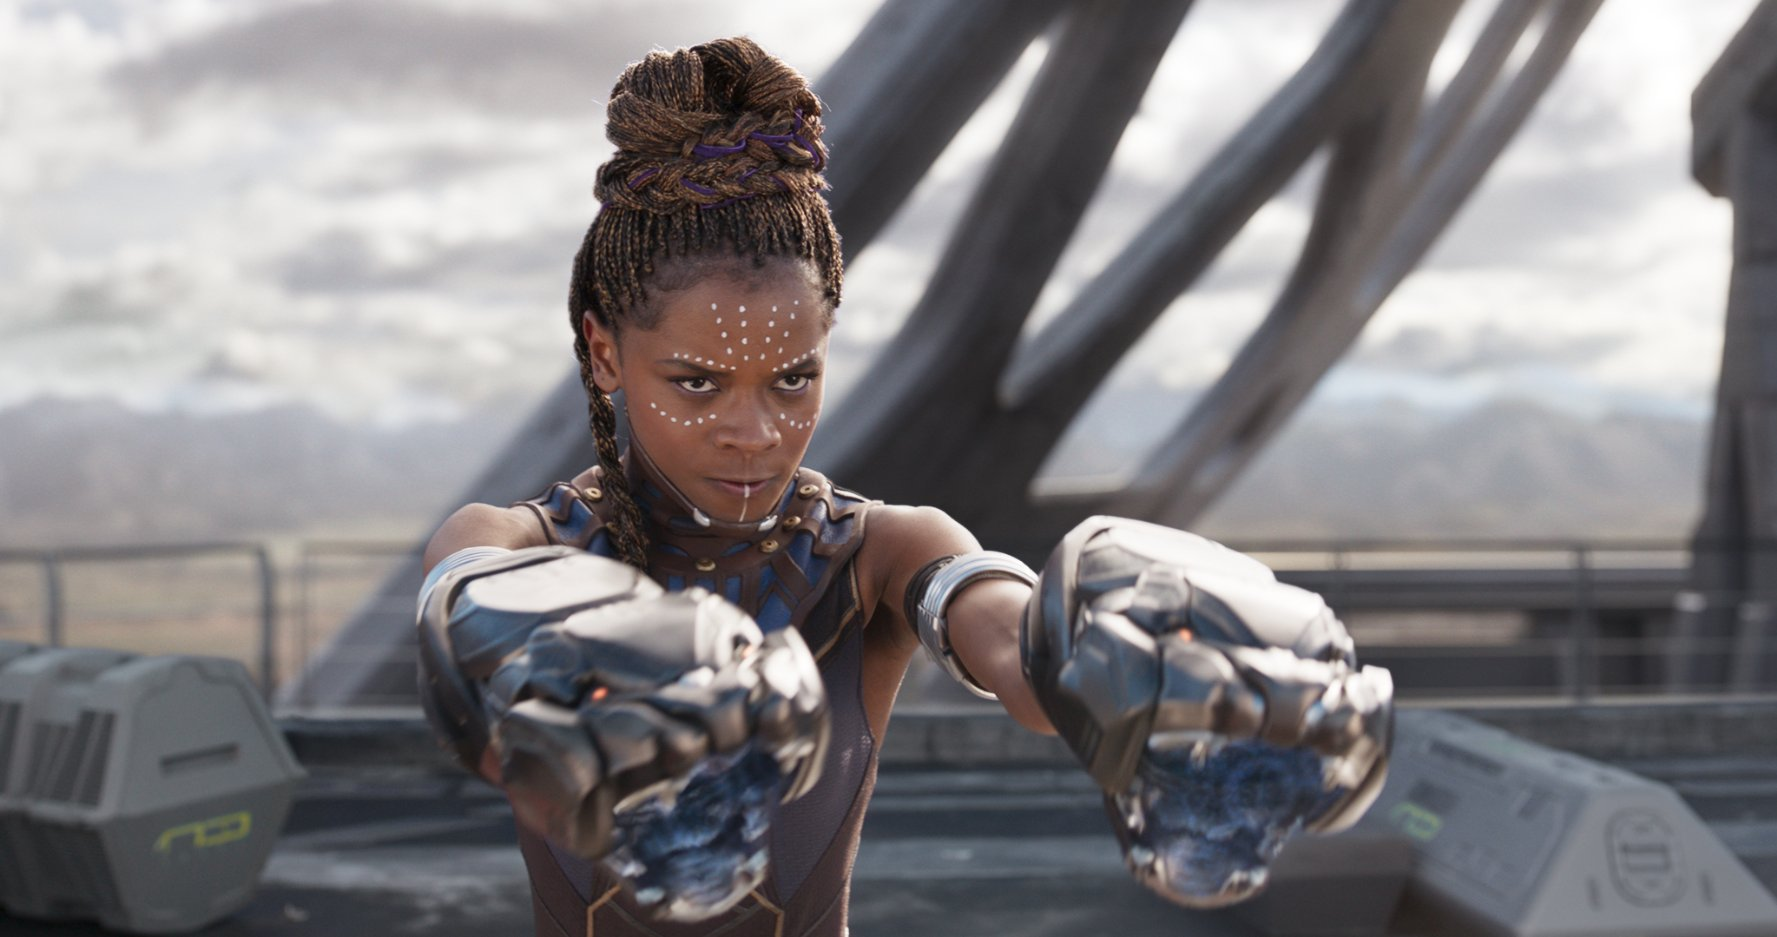 Ex Top Boy actor Letitia Wright stars as T'Challa's brilliant, tech-savvy sister, Shuri. Credit: Forbes Magazine, 2018